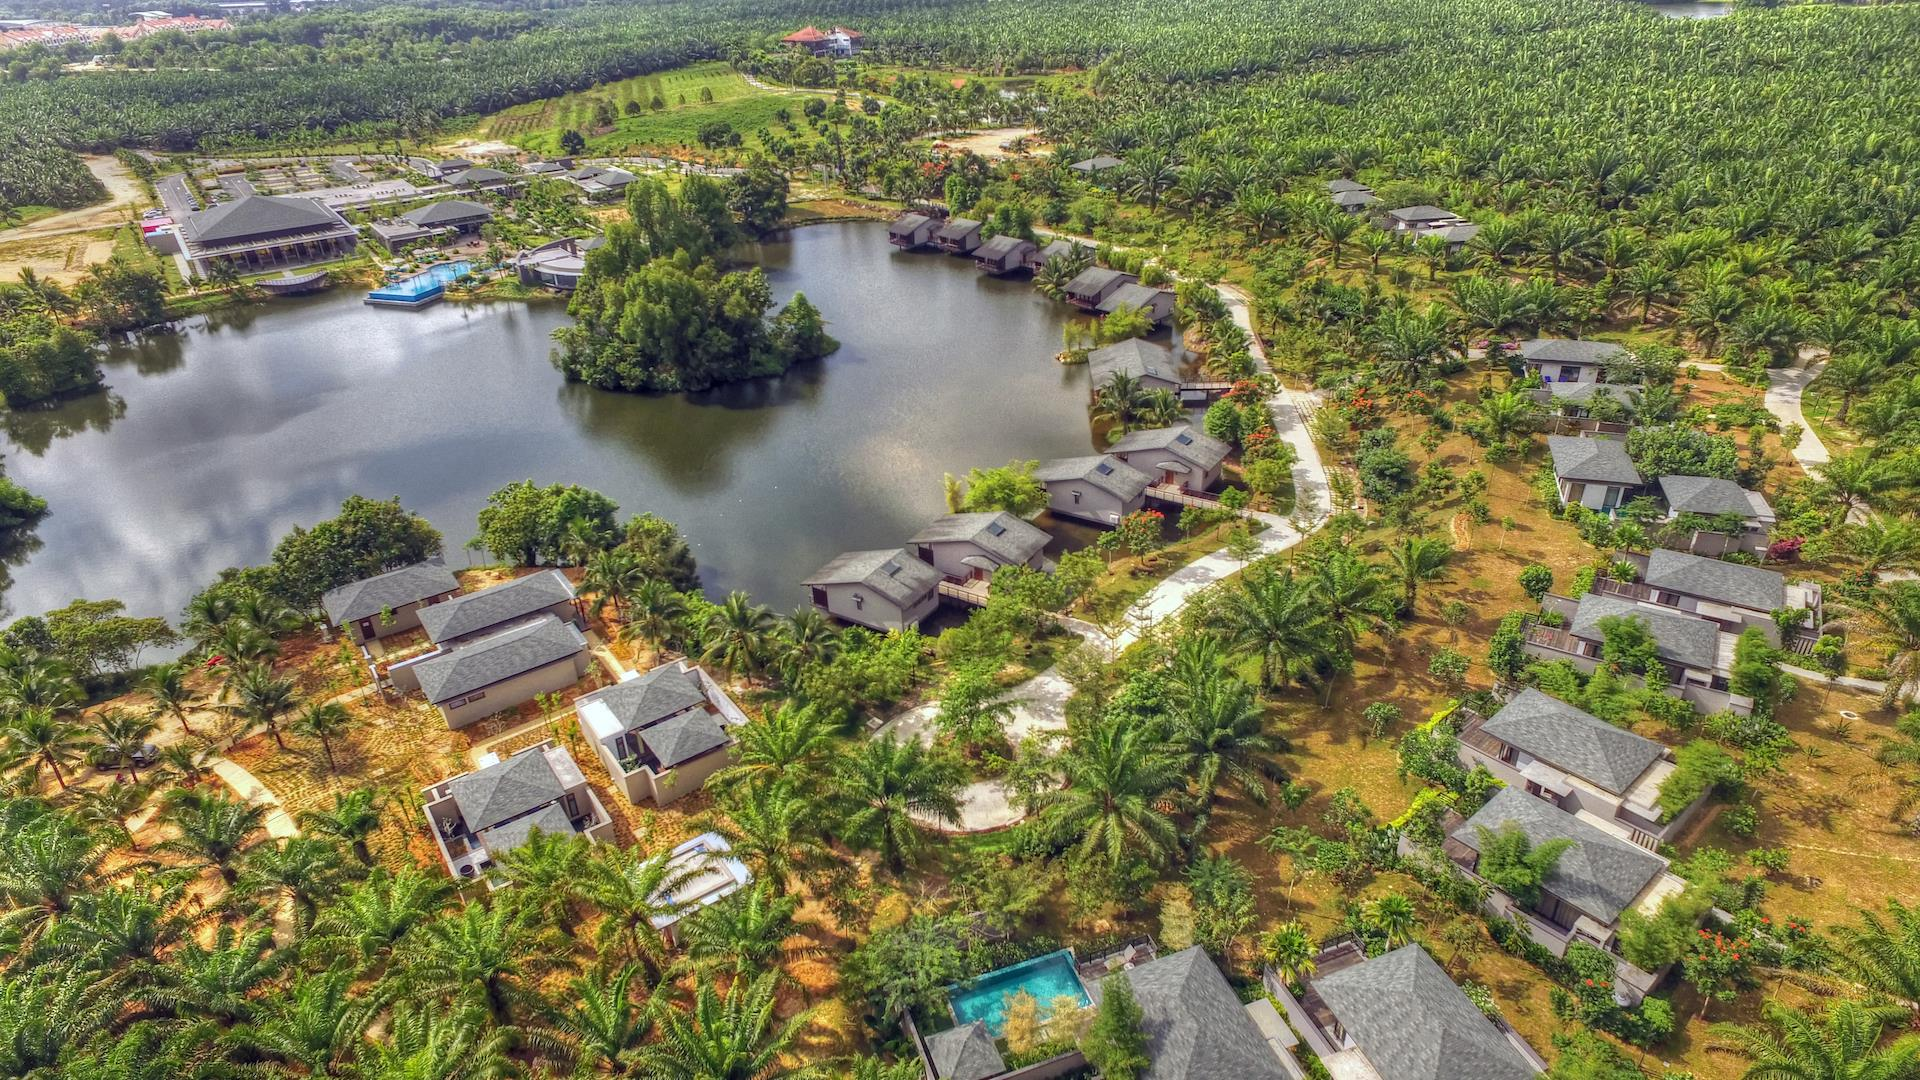 Image from Mangala Resort and Spa/Facebook